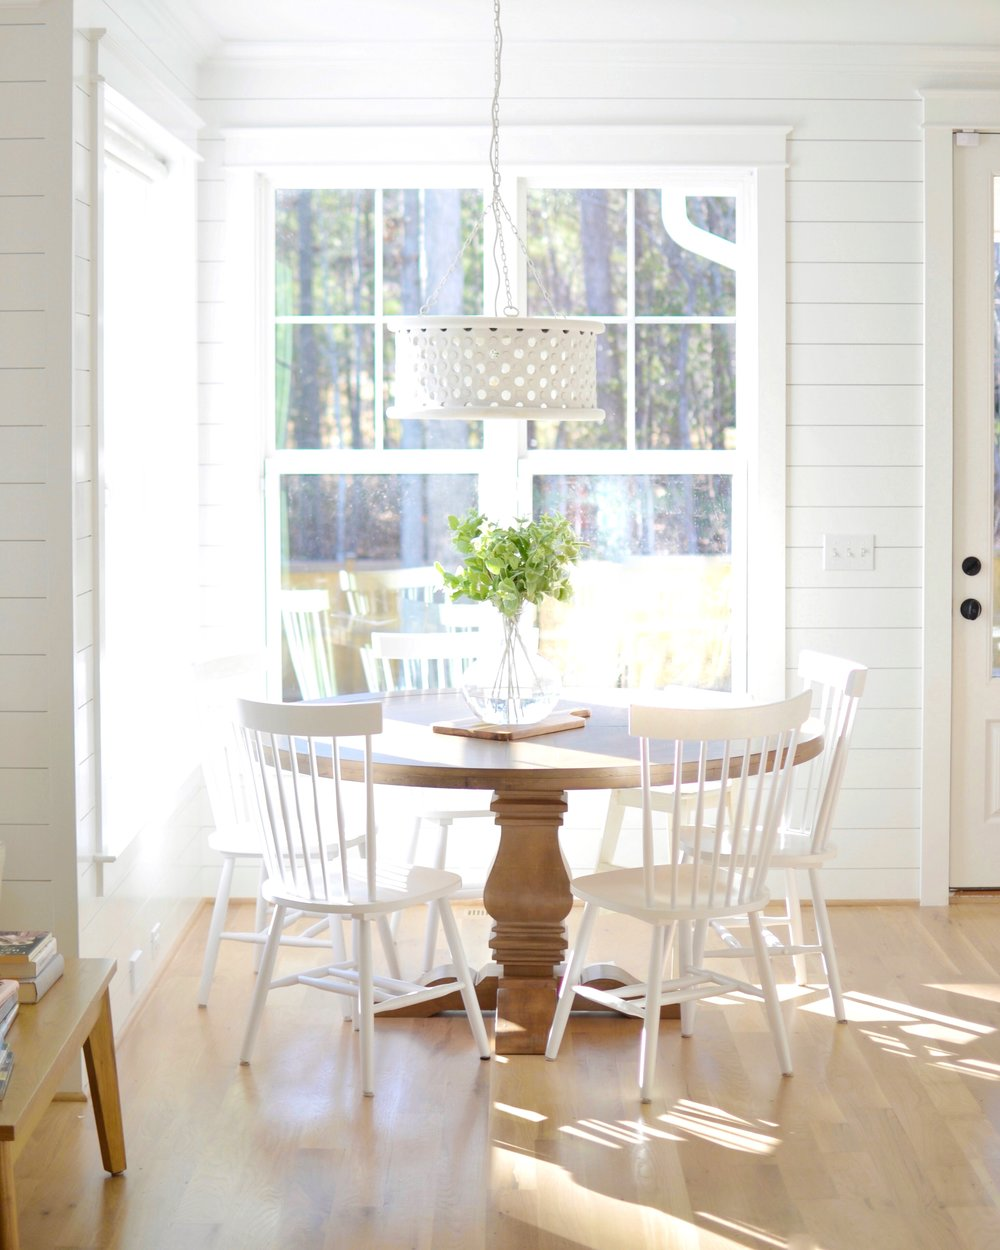 Our solid wood kitchen table from Wayfair